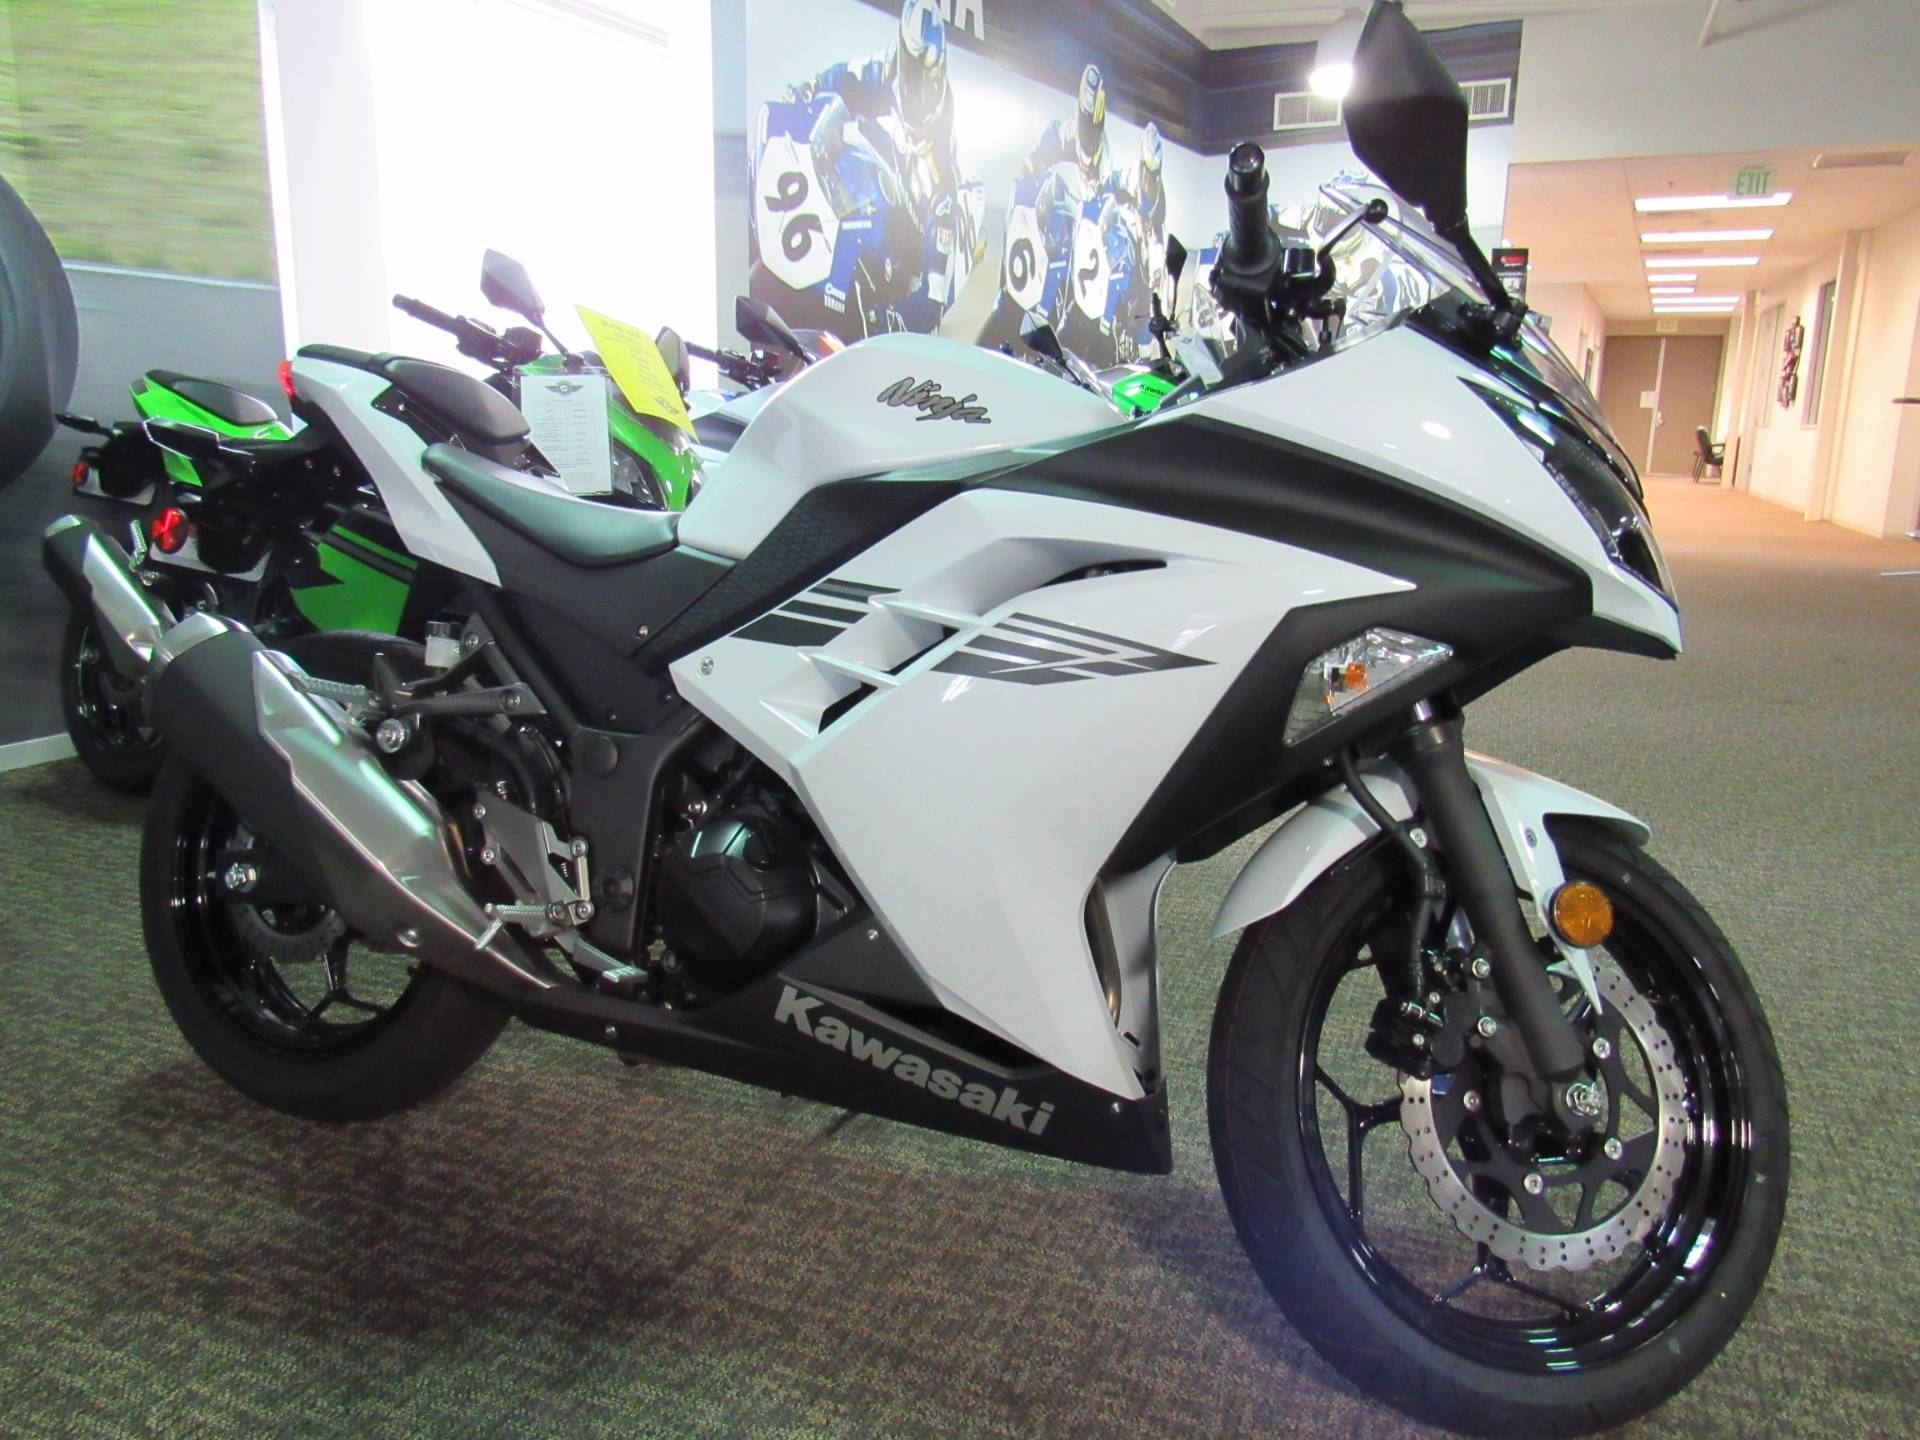 2017 Kawasaki Ninja300 in Irvine, California